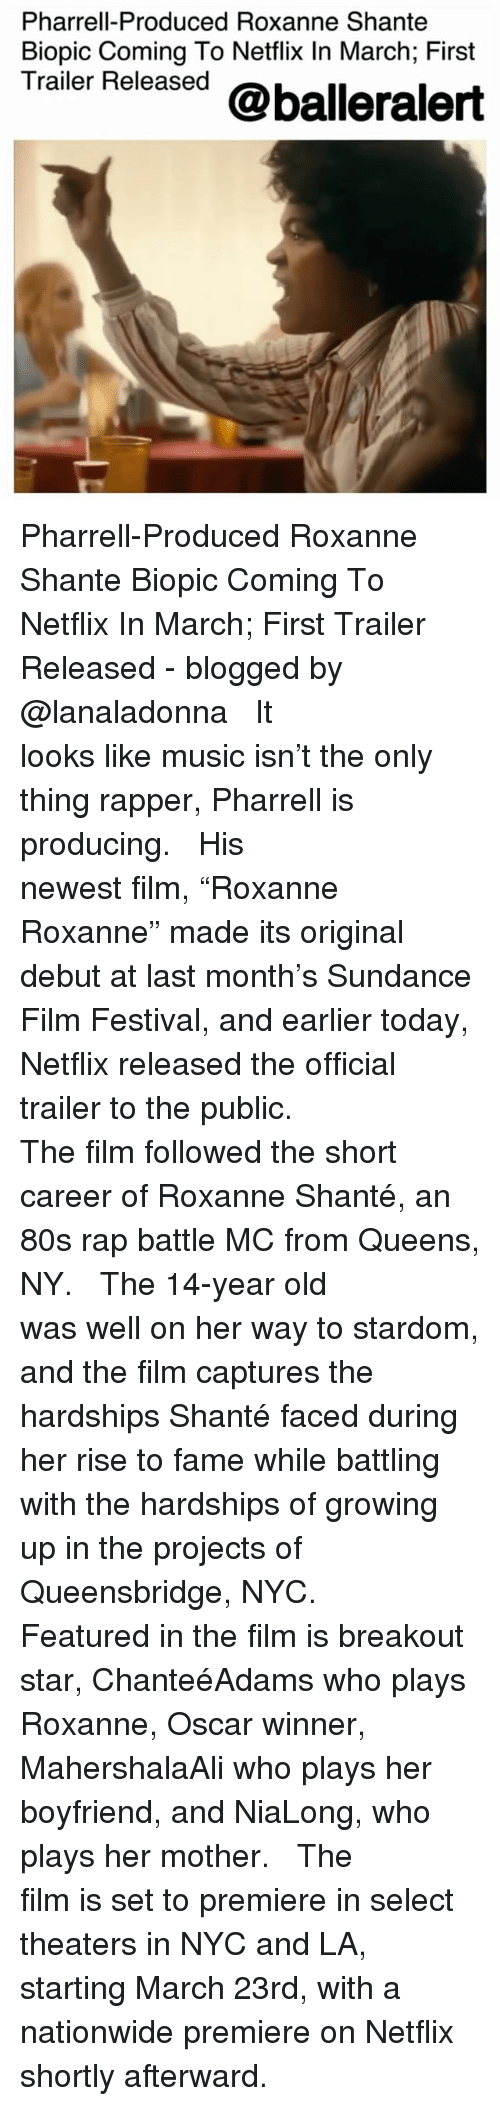 """breakout: Pharrell-Produced Roxanne Shante  Biopic Coming To Netflix In March; First  Trailer Released @balleralert Pharrell-Produced Roxanne Shante Biopic Coming To Netflix In March; First Trailer Released - blogged by @lanaladonna ⠀⠀⠀⠀⠀⠀⠀ ⠀⠀⠀⠀⠀⠀⠀ It looks like music isn't the only thing rapper, Pharrell is producing. ⠀⠀⠀⠀⠀⠀⠀ ⠀⠀⠀⠀⠀⠀⠀ His newest film, """"Roxanne Roxanne"""" made its original debut at last month's Sundance Film Festival, and earlier today, Netflix released the official trailer to the public. ⠀⠀⠀⠀⠀⠀⠀ ⠀⠀⠀⠀⠀⠀⠀ The film followed the short career of Roxanne Shanté, an 80s rap battle MC from Queens, NY. ⠀⠀⠀⠀⠀⠀⠀ ⠀⠀⠀⠀⠀⠀⠀ The 14-year old was well on her way to stardom, and the film captures the hardships Shanté faced during her rise to fame while battling with the hardships of growing up in the projects of Queensbridge, NYC. ⠀⠀⠀⠀⠀⠀⠀ ⠀⠀⠀⠀⠀⠀⠀ Featured in the film is breakout star, ChanteéAdams who plays Roxanne, Oscar winner, MahershalaAli who plays her boyfriend, and NiaLong, who plays her mother. ⠀⠀⠀⠀⠀⠀⠀ ⠀⠀⠀⠀⠀⠀⠀ The film is set to premiere in select theaters in NYC and LA, starting March 23rd, with a nationwide premiere on Netflix shortly afterward."""